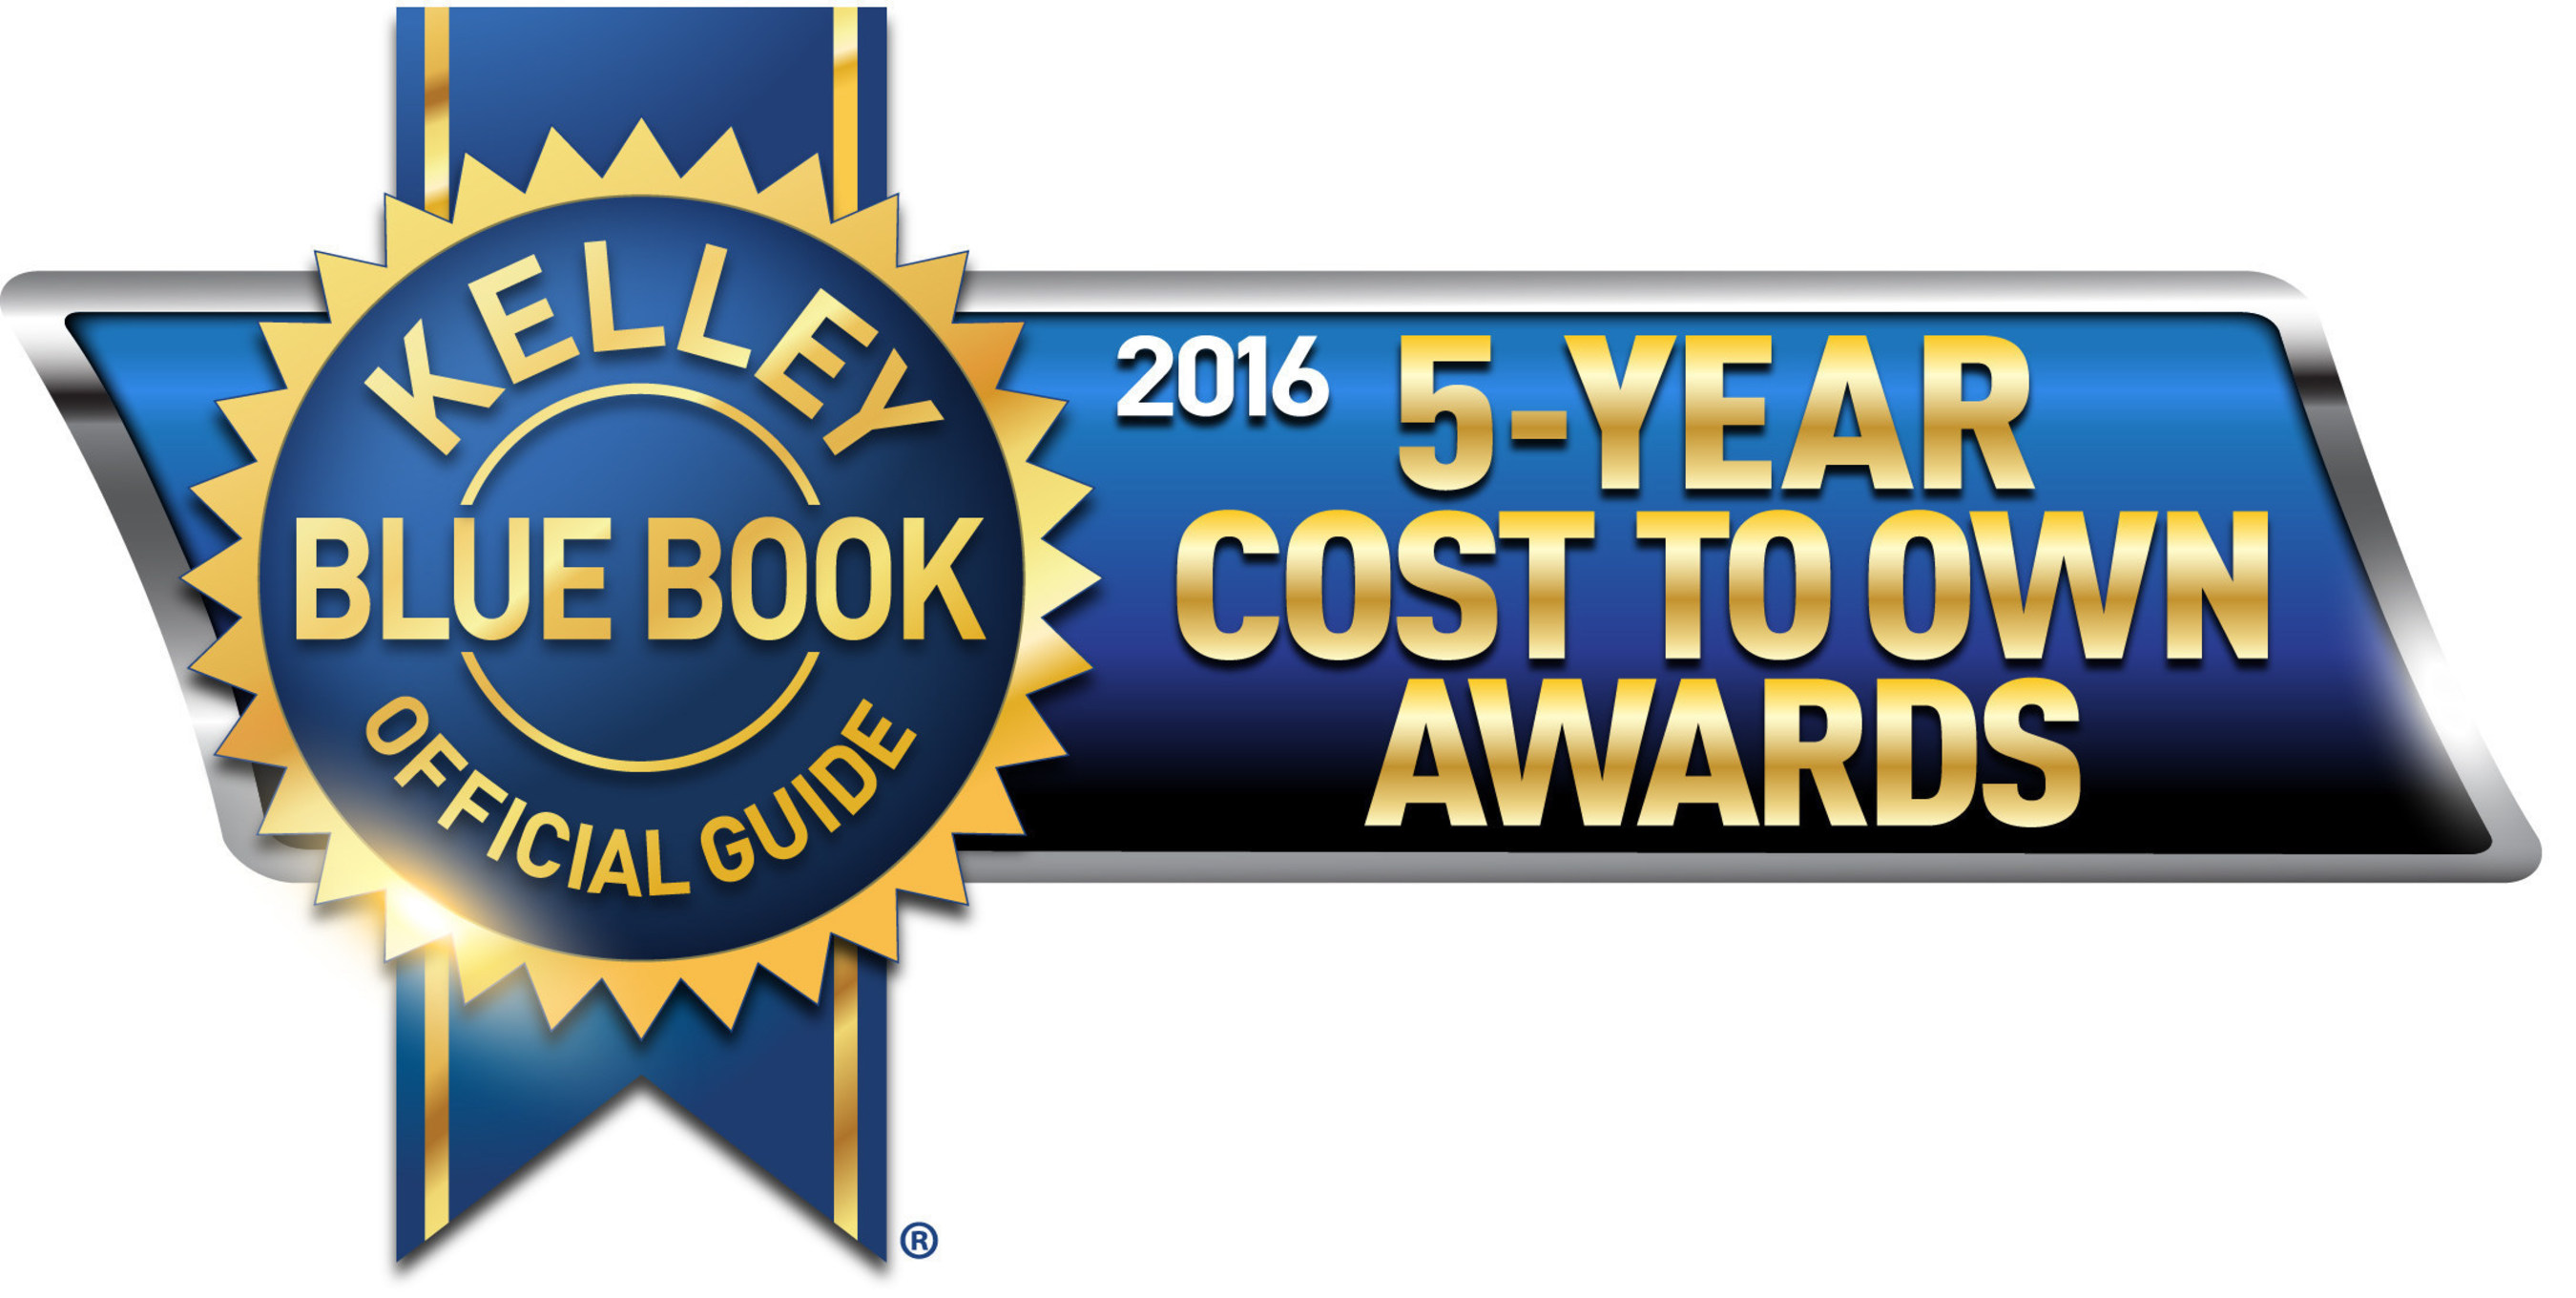 Kbb Used Car Value Calculator Inspirational 2016 5 Year Cost to Own Award Winners Announced by Kelley Blue Book